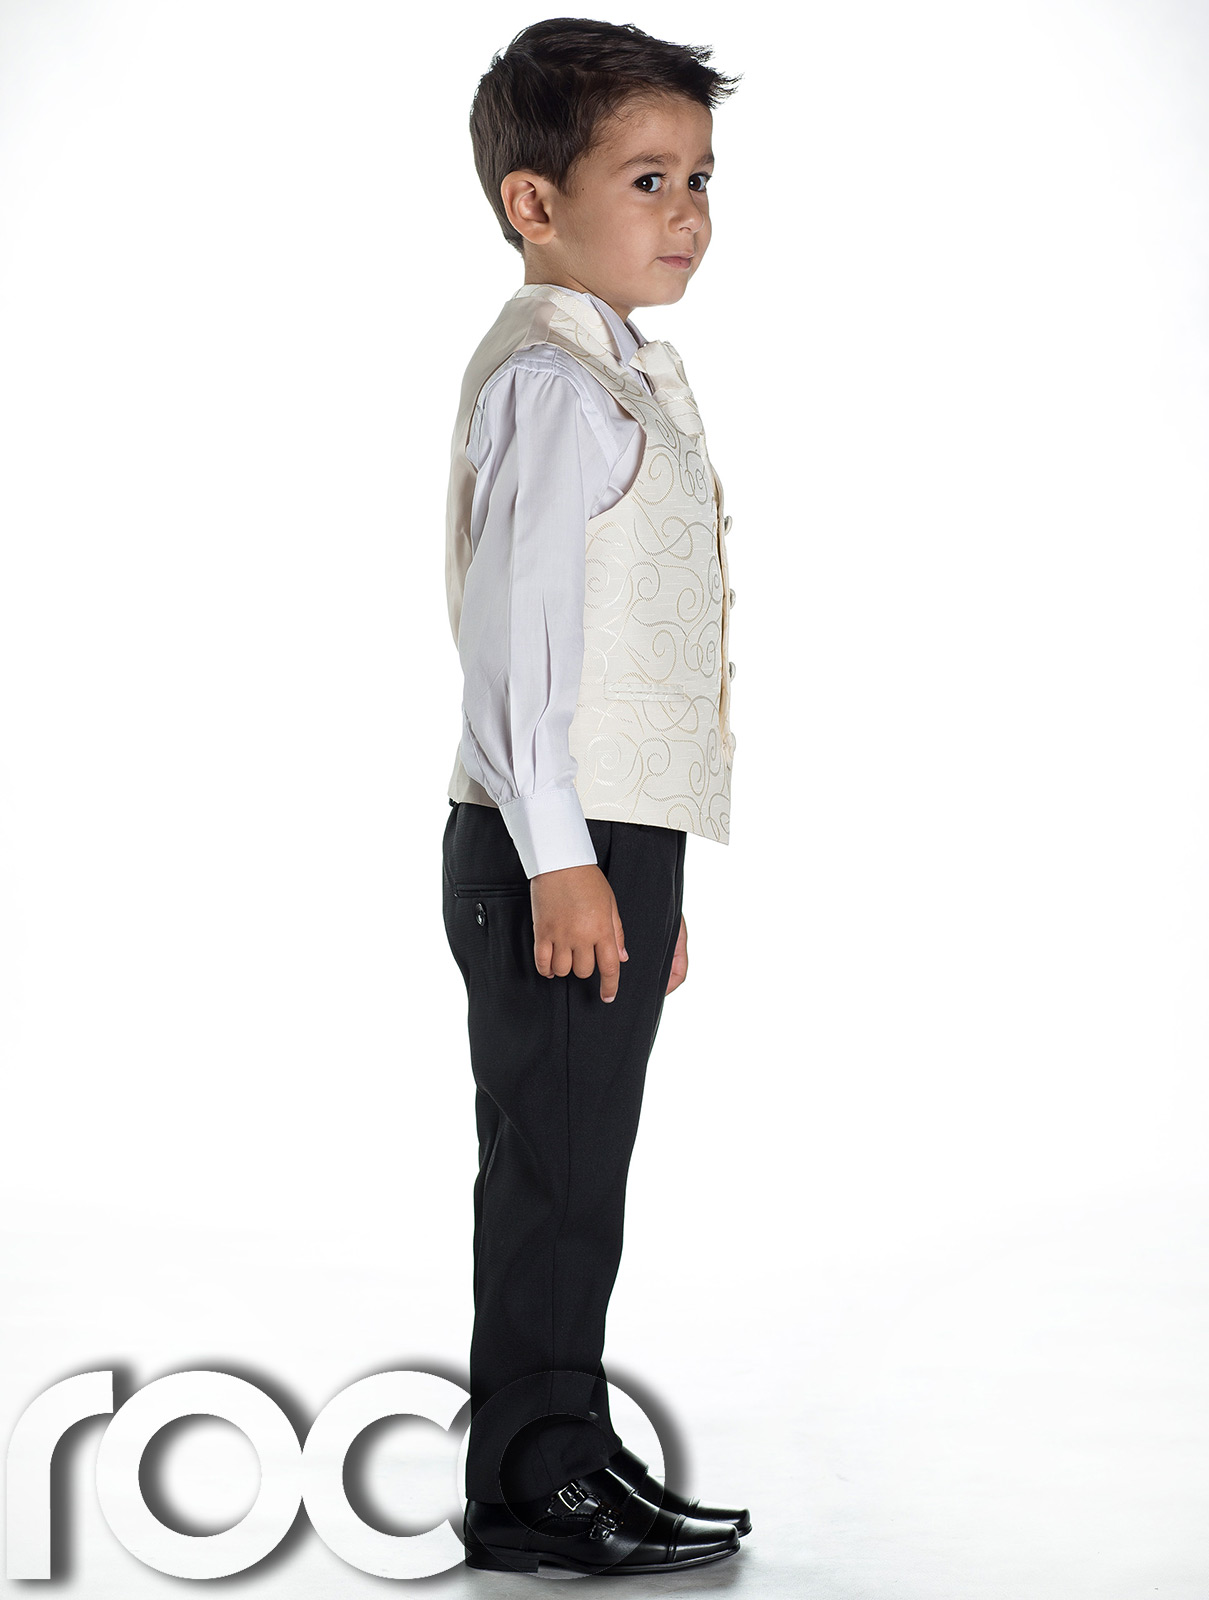 Boys' Suits. invalid category id. Boys' Suits. Showing 2 of 2 results that match your query. Big Boys Tuxedo in Black with a Lilac Light Purple Bow Tie. Product Image. We focused on the bestselling products customers like you want most in categories like Baby, Clothing, Electronics and Health & Beauty. Marketplace items.